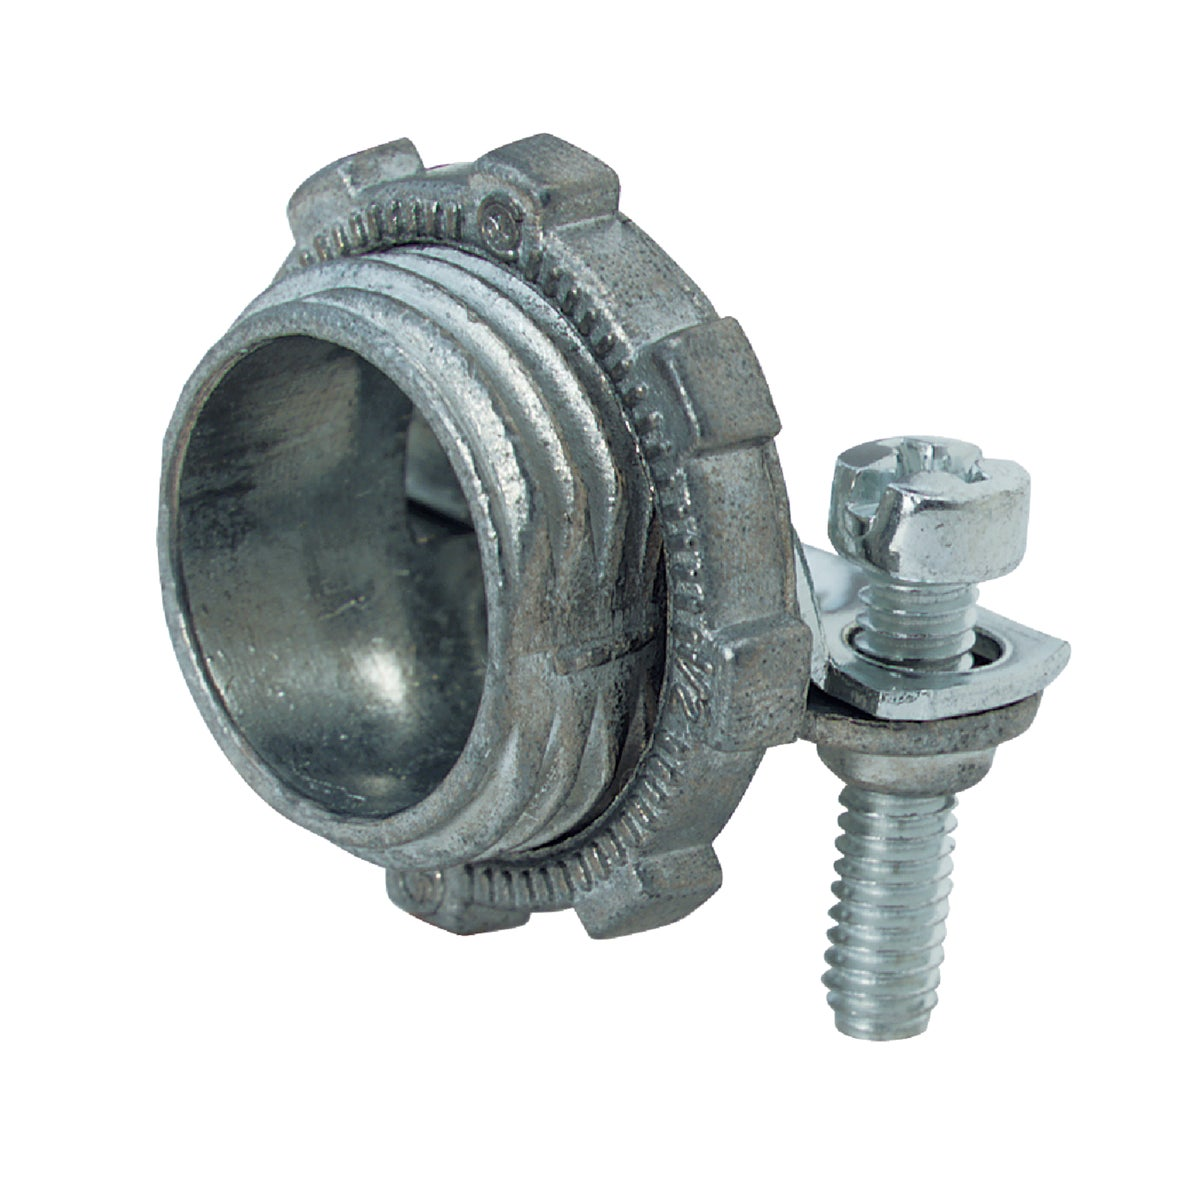 "3/8"" BOX CONNECTOR - NC3011 by Thomas & Betts"